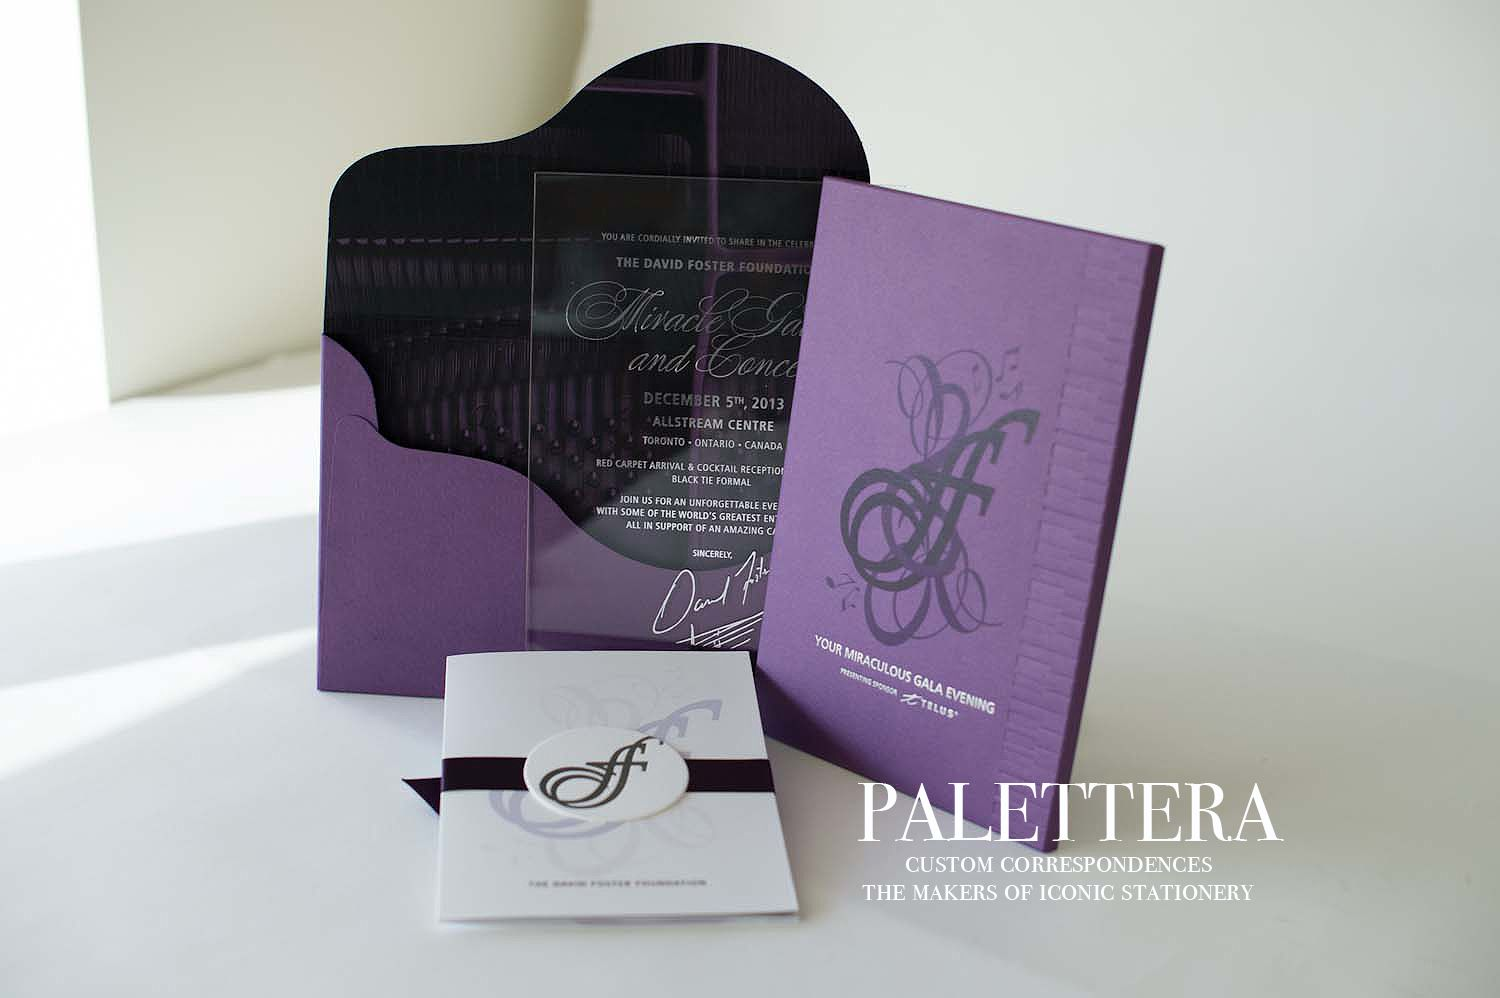 Piano Inspired Design For David Foster Foundation Pearlized Paper With Blind Debossing Foil Press Tone On Ton Luxury Invitation The Fosters Event Invitation